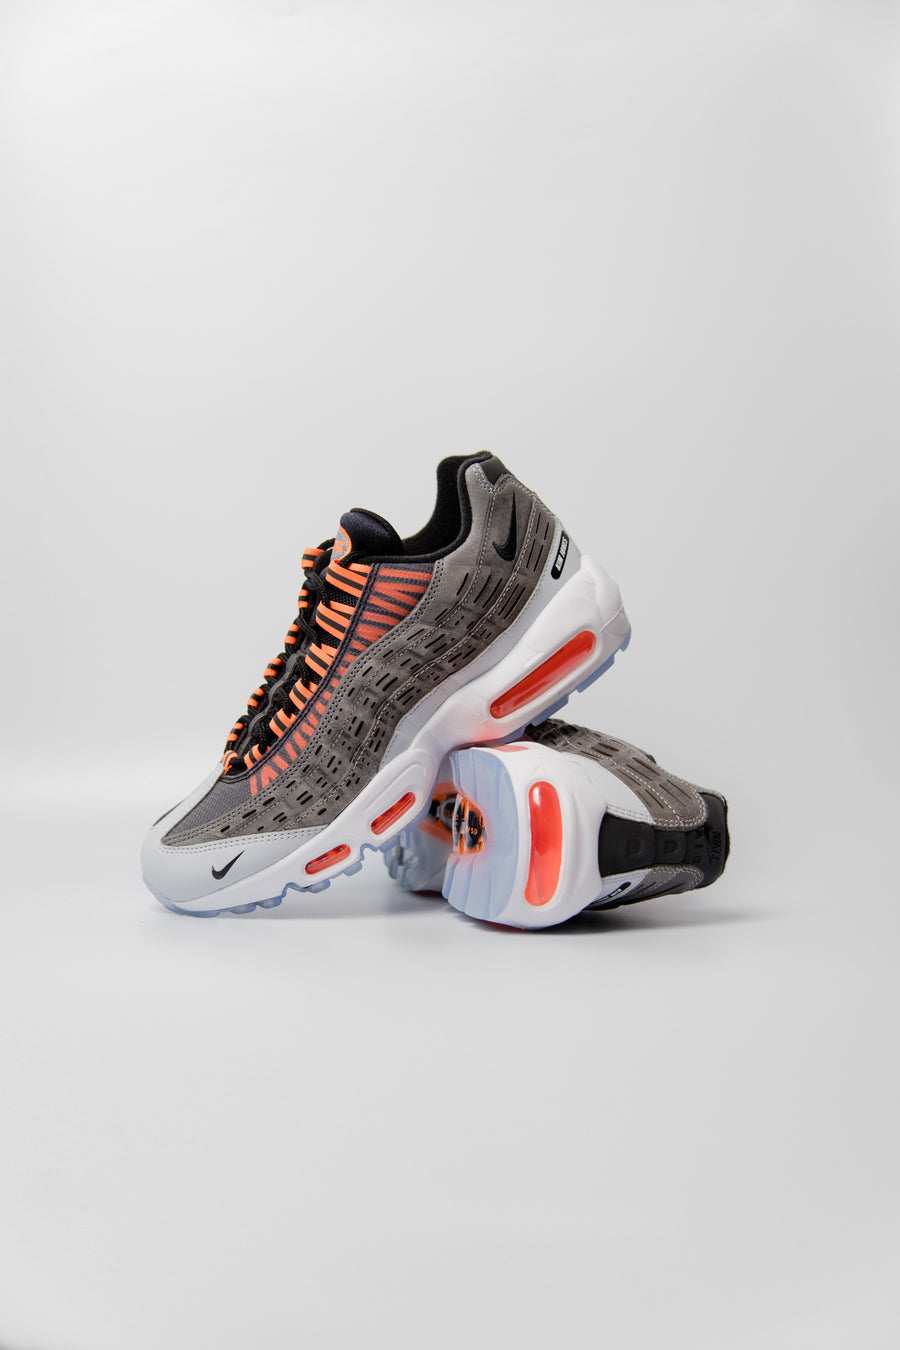 Kim Jones Air Max 95 Black/Total Orange/Dark Grey/Cool Grey DD1871-001 (LAUNCH PRODUCT)